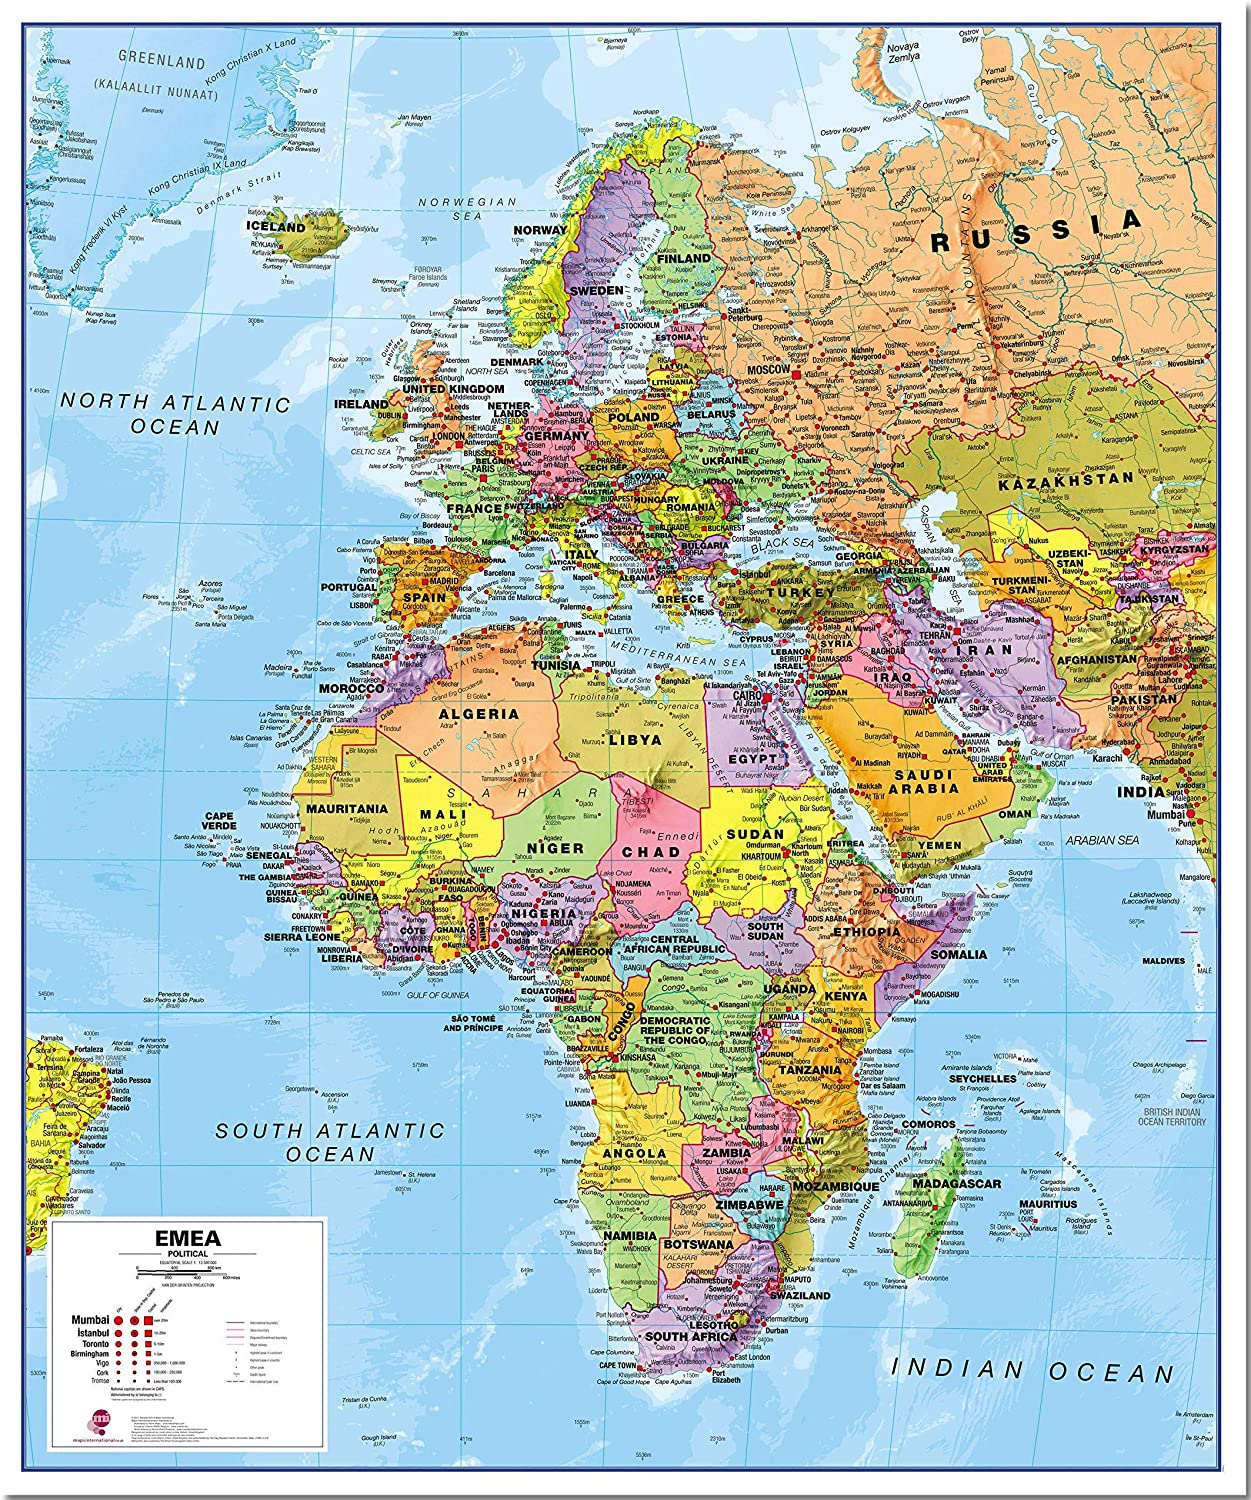 Map Of Europe And Africa Amazon.: Maps International Political Europe Middle East